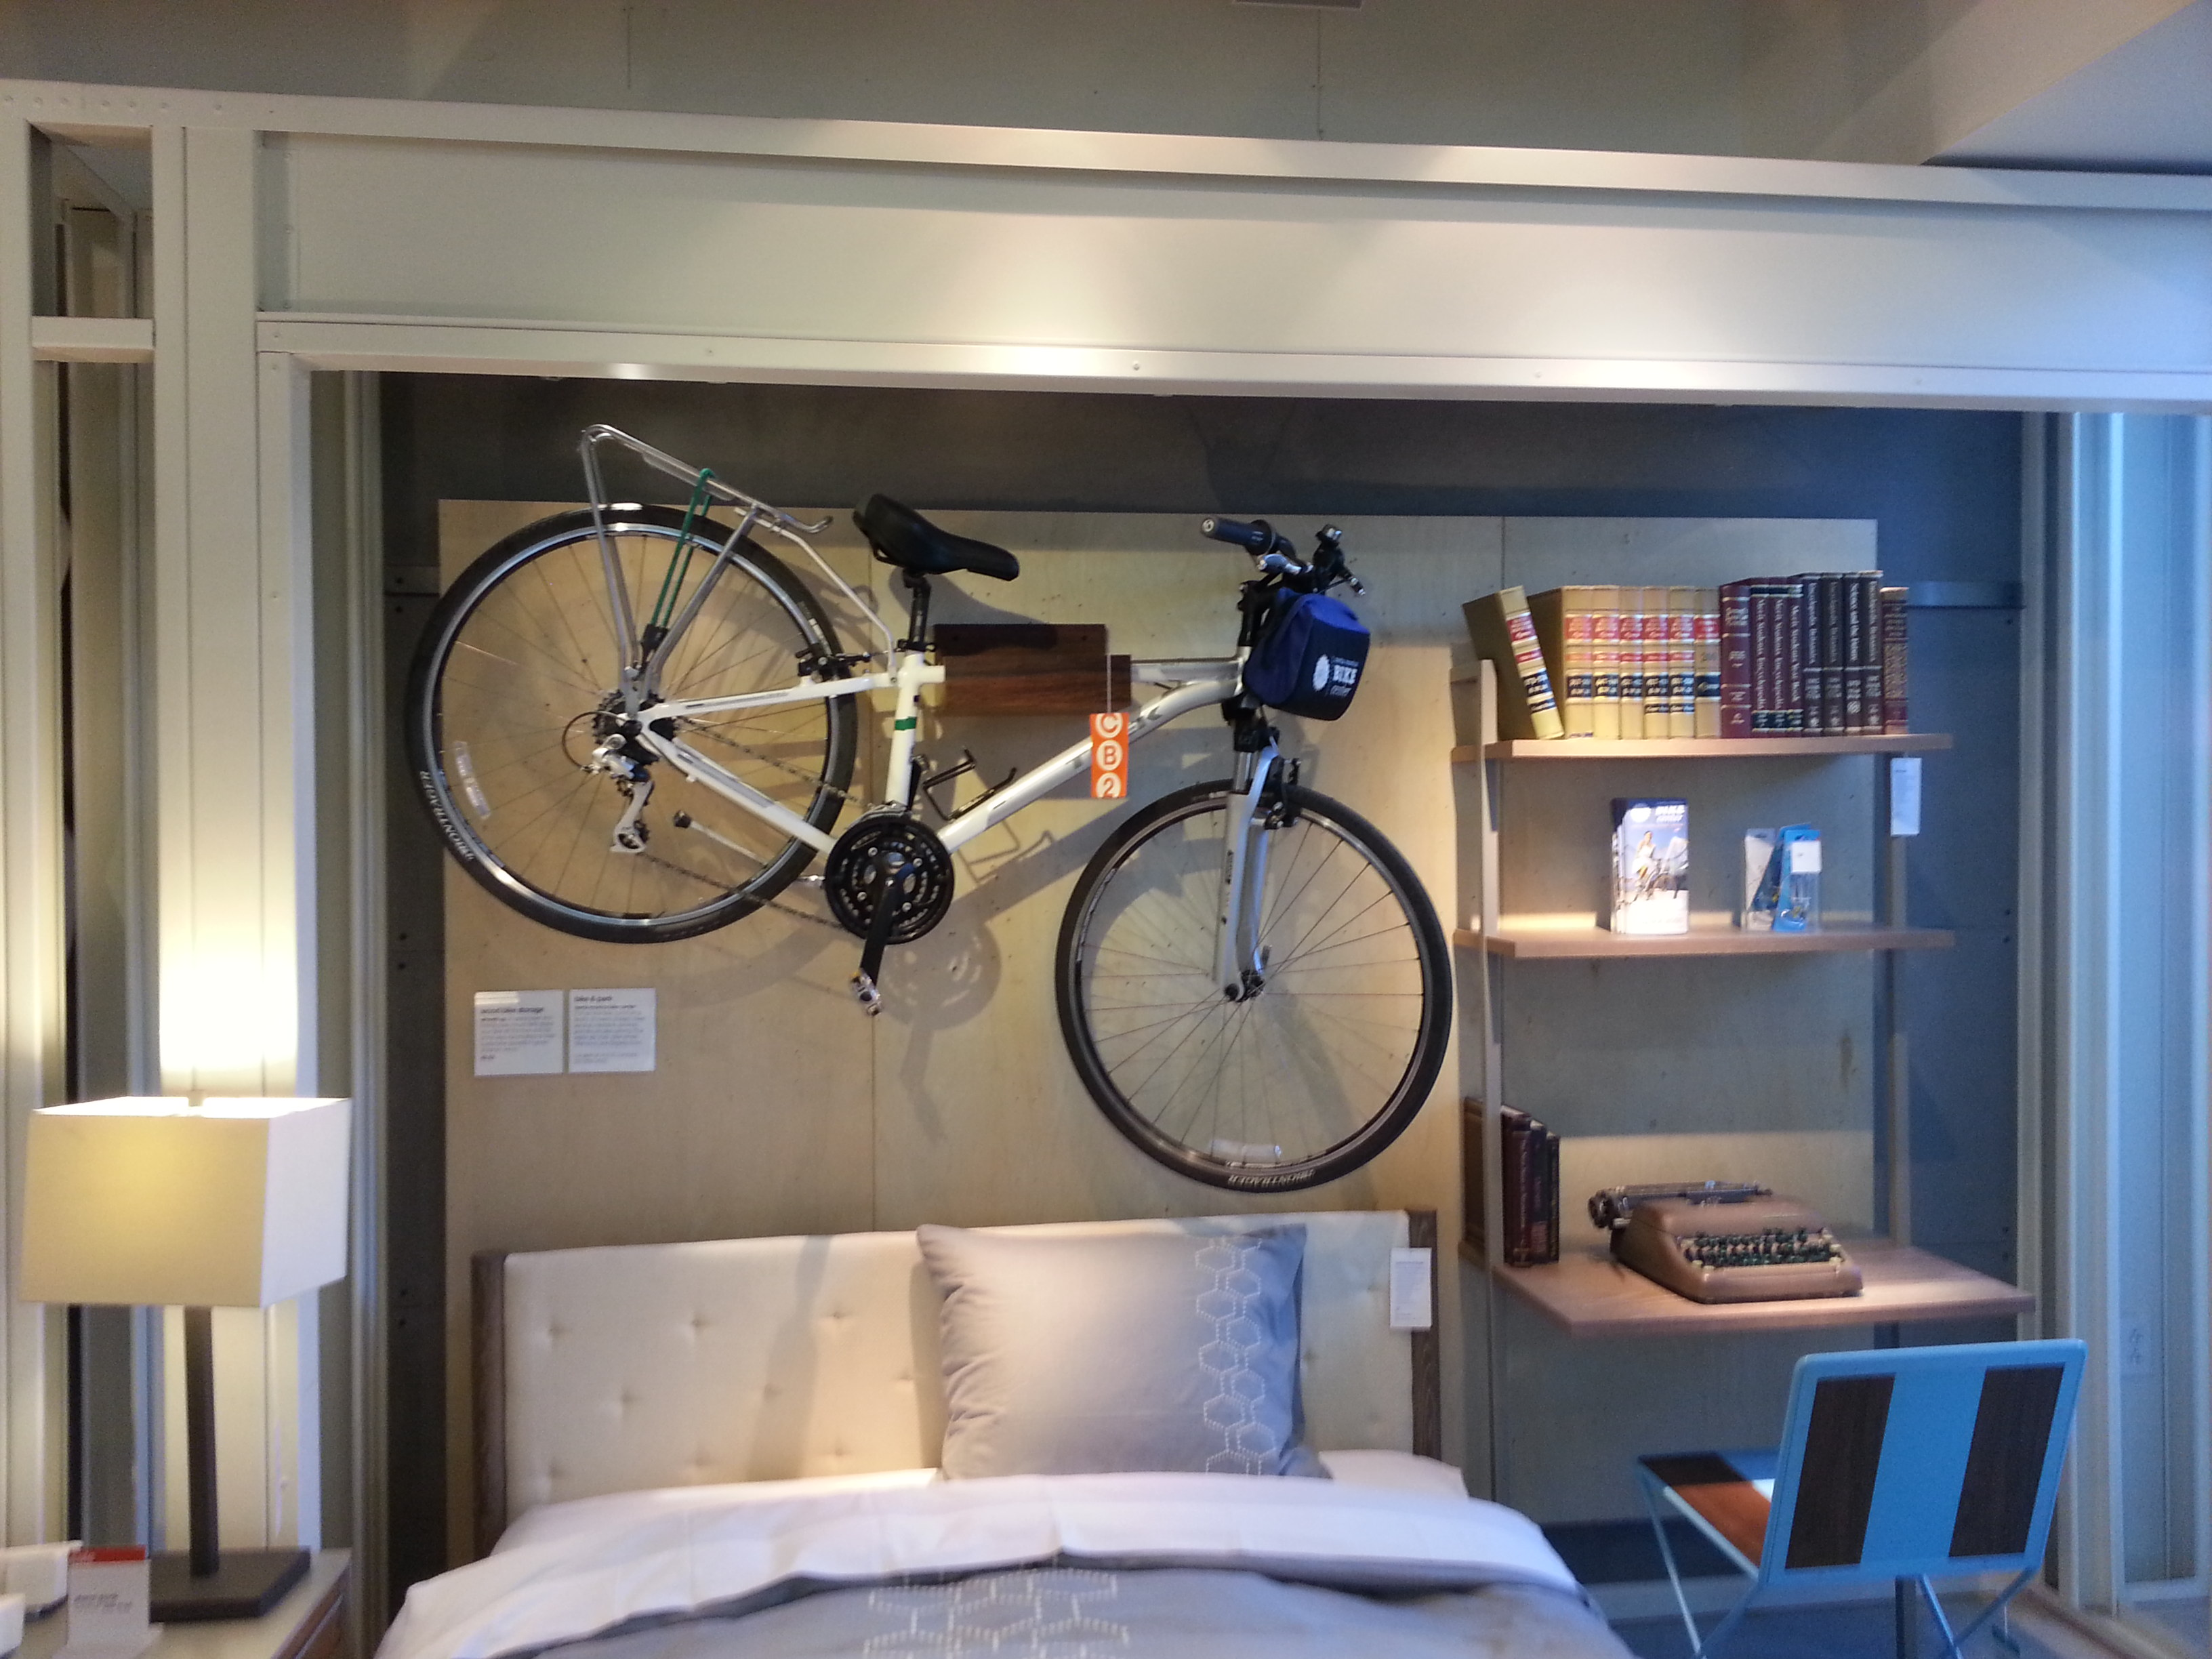 An Affordable Bike Rack For Apartments | PMI Properties